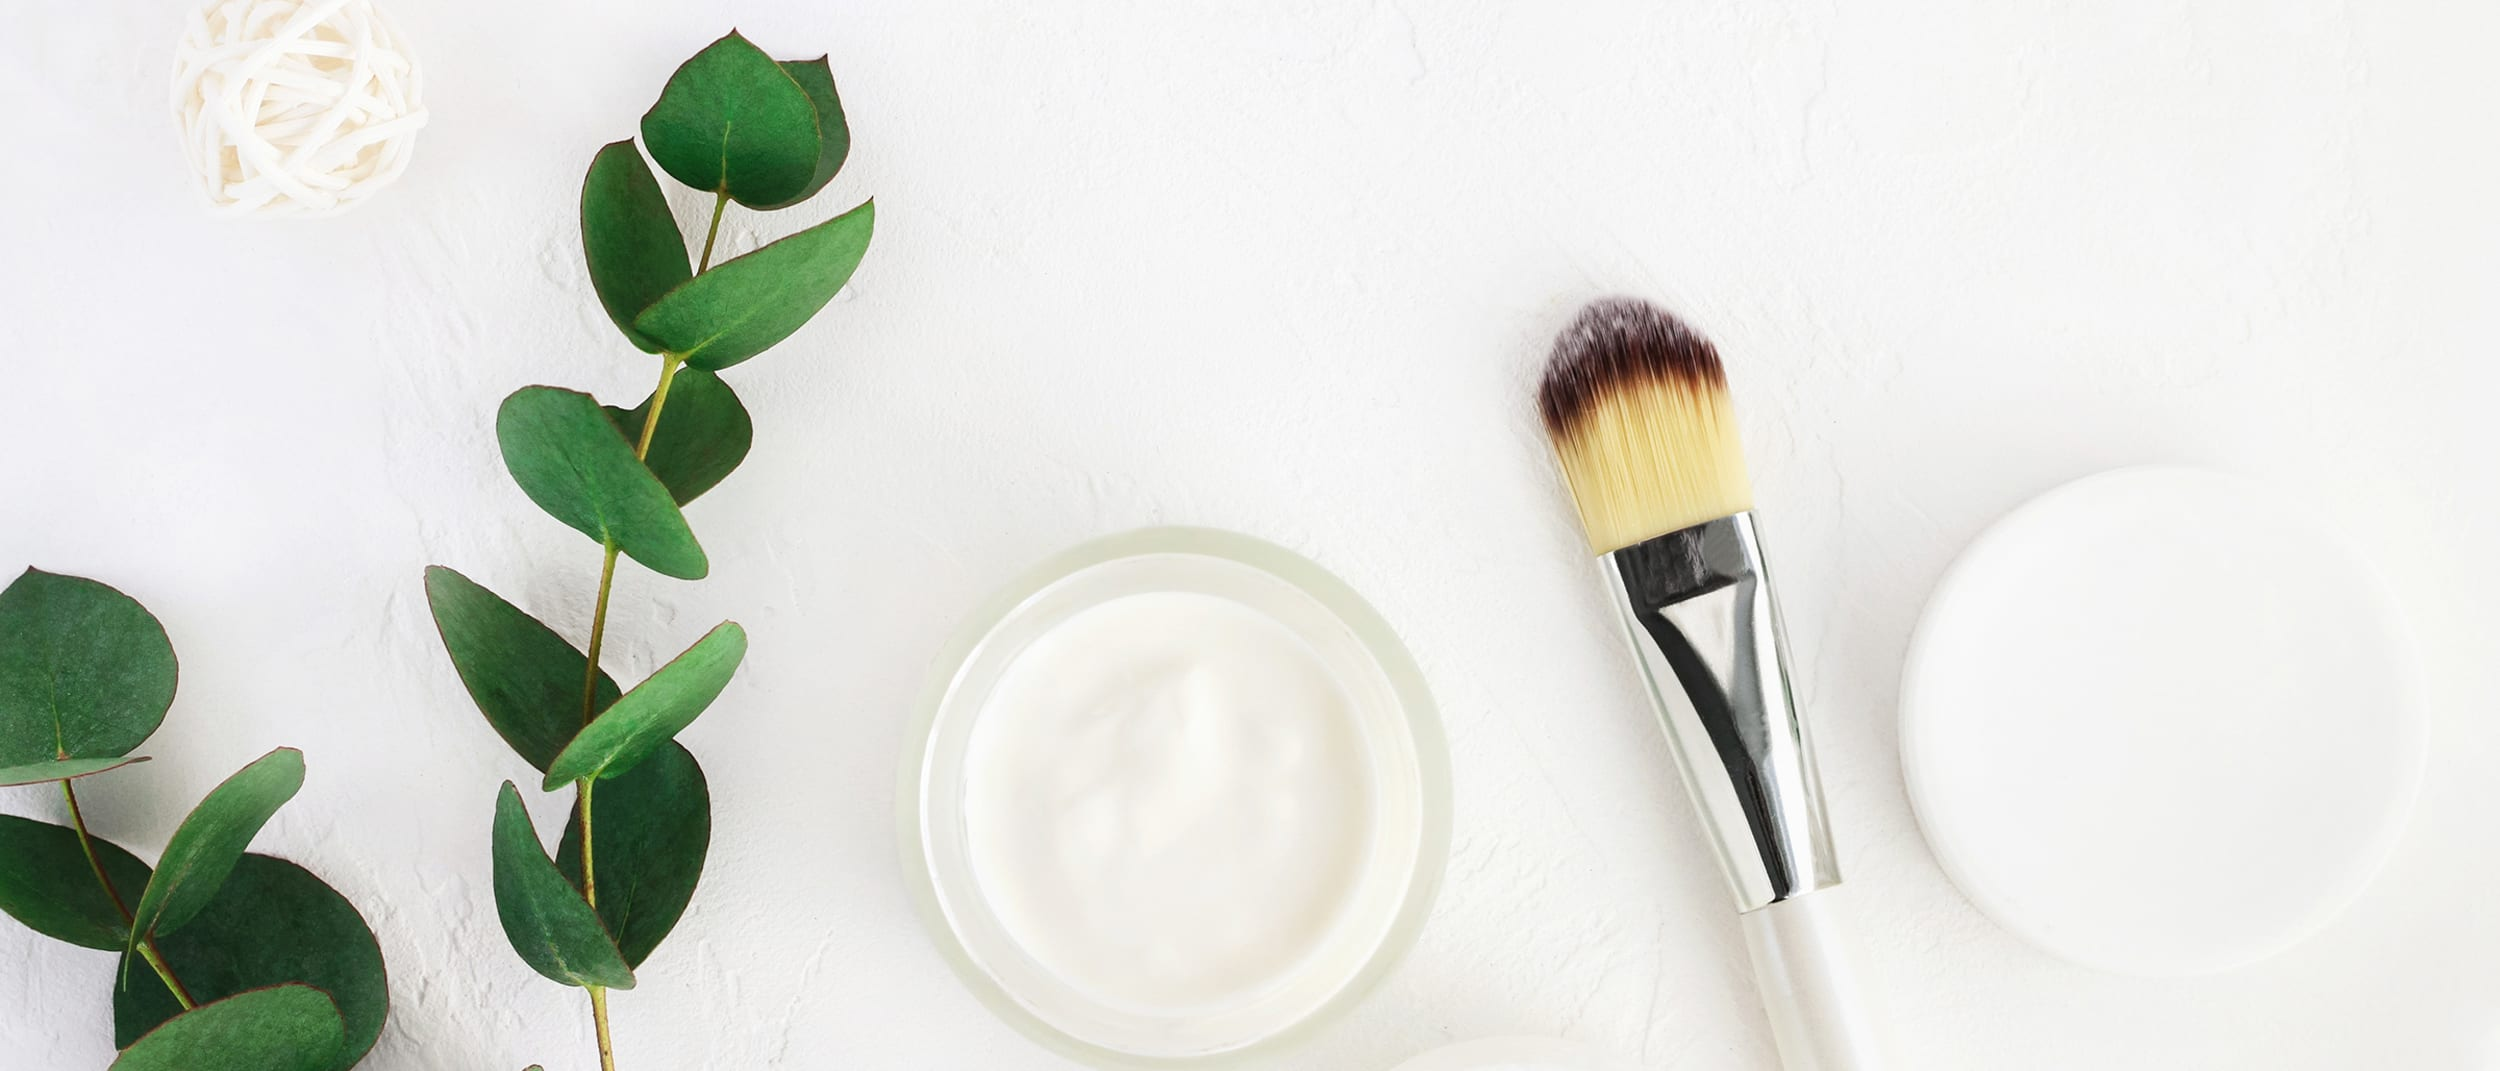 Makeup brush and cream